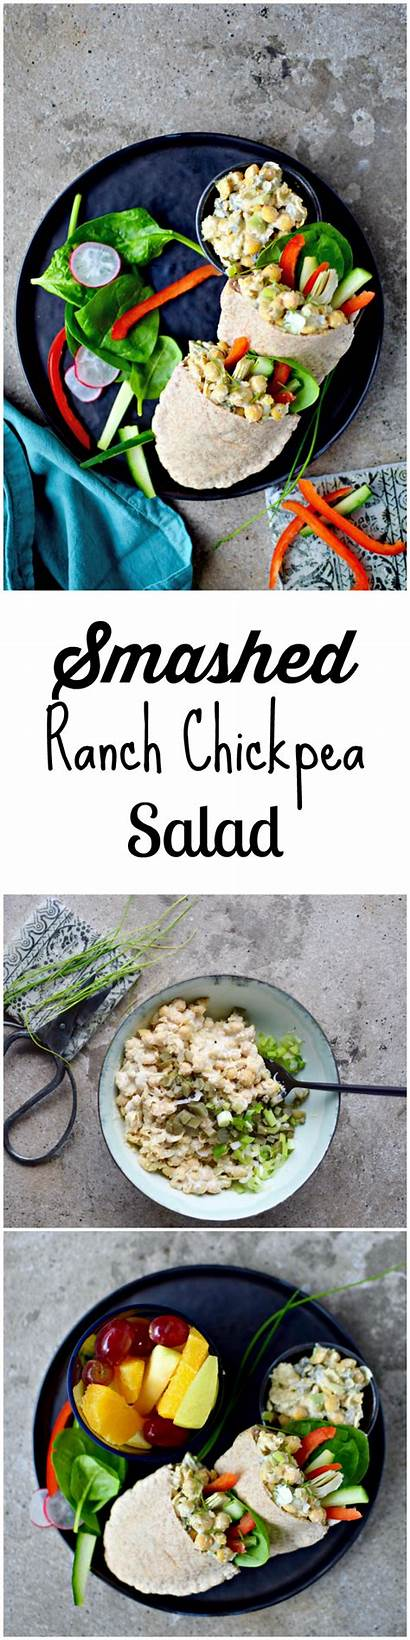 Salad Chickpea Ranch Recipes Lunch Creamy Dinner